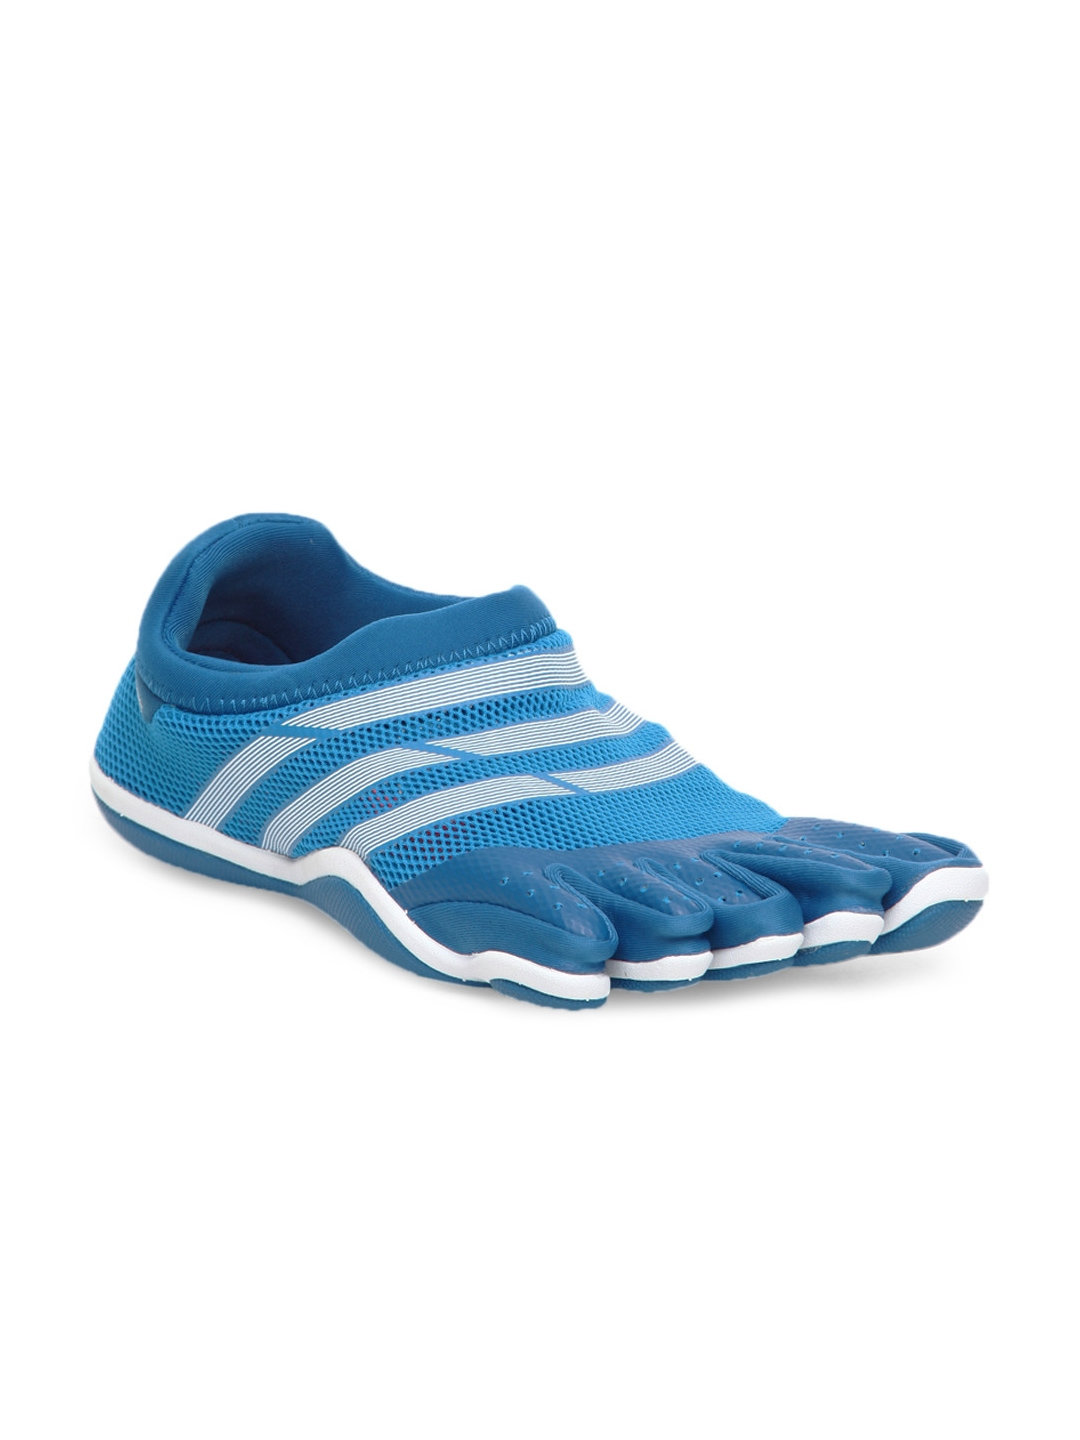 tapa Especial cuestionario  Buy ADIDAS Adipure Trainer Men Blue Toe Shoes - Sports Shoes for Men 81524  | Myntra